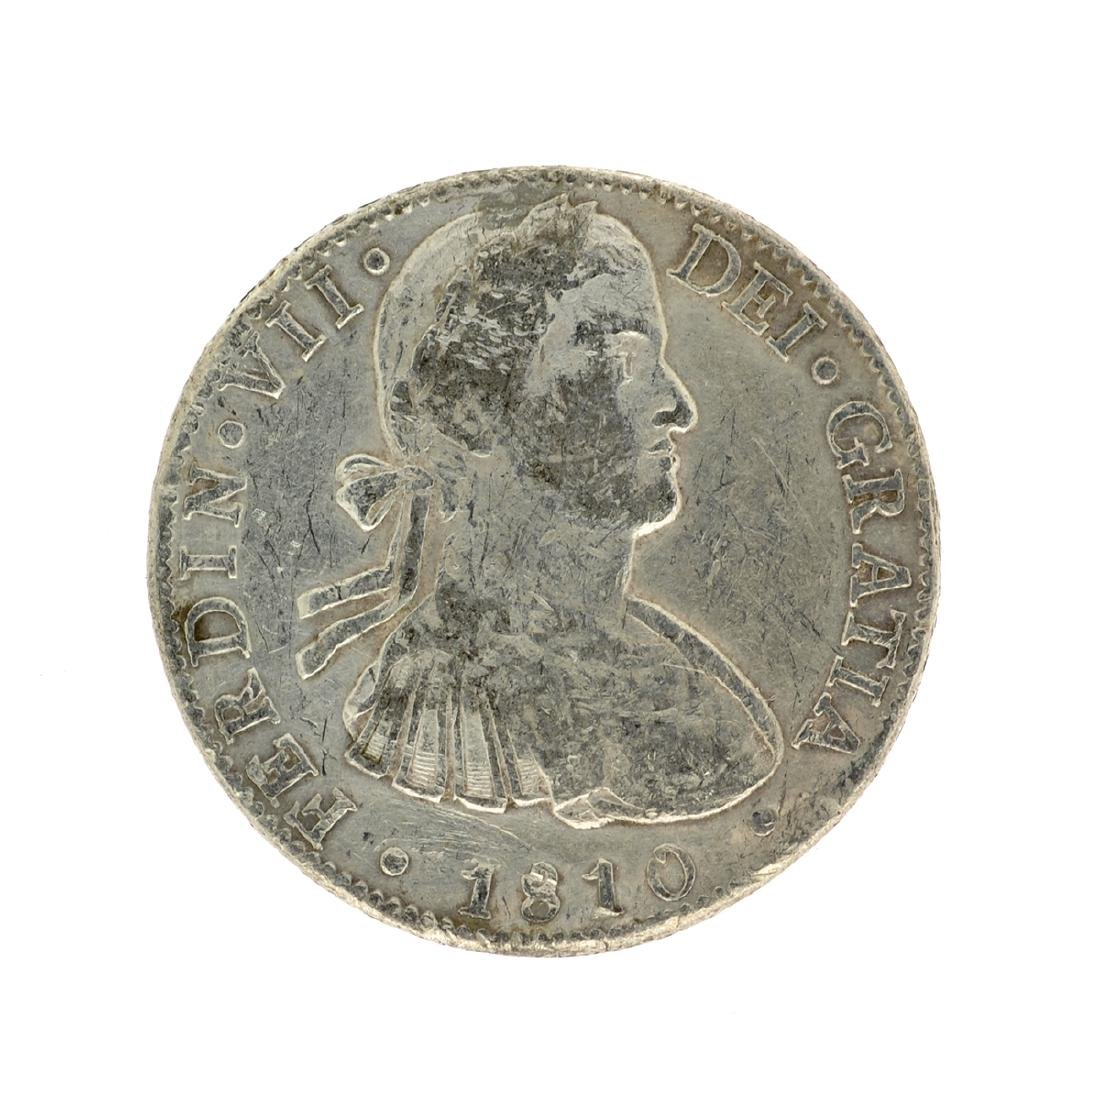 1810 Extremely Rare Eight Reales American First Silver